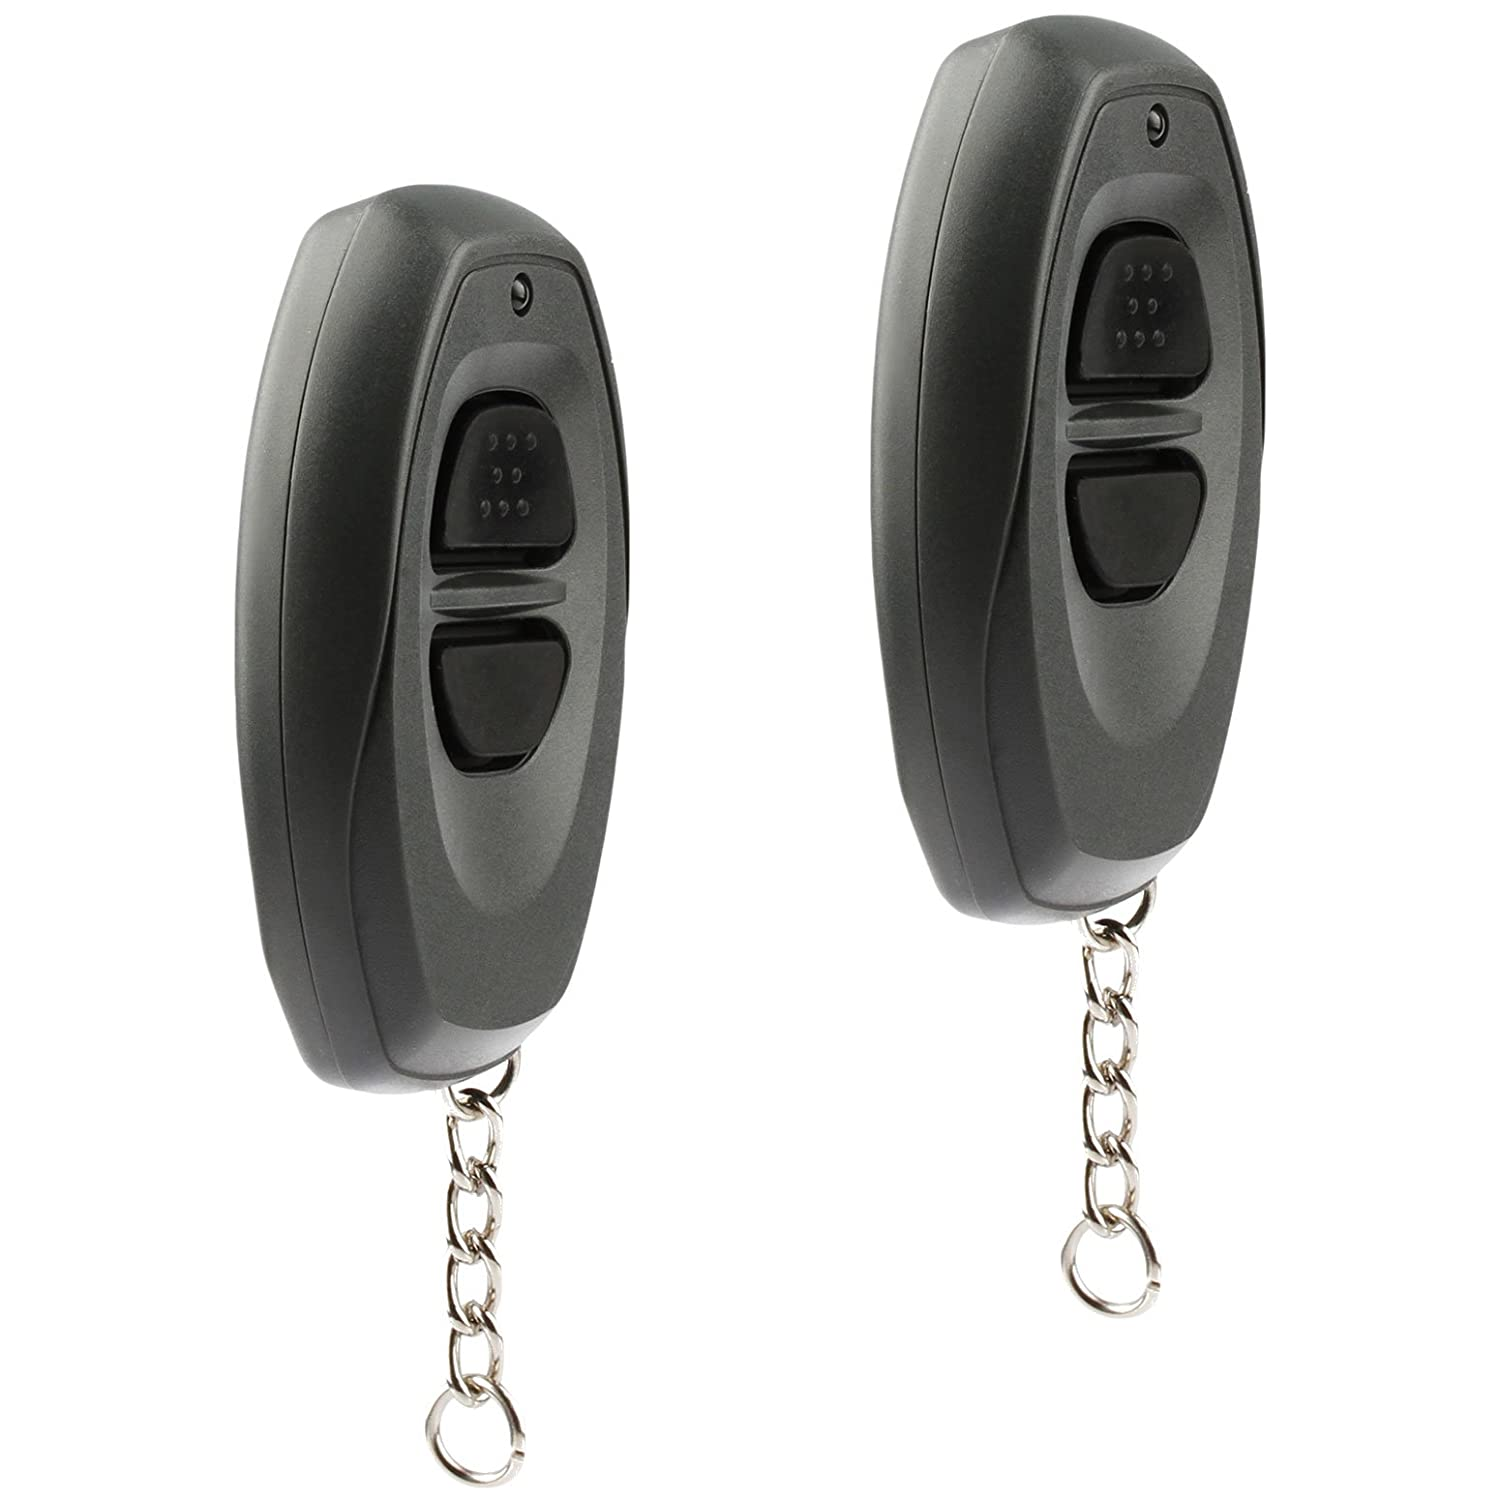 BAB237131-022, 08191-00870 Set of 2 USARemote Car Key Fob Keyless Entry Remote fits Toyota Dealer Installed Systems